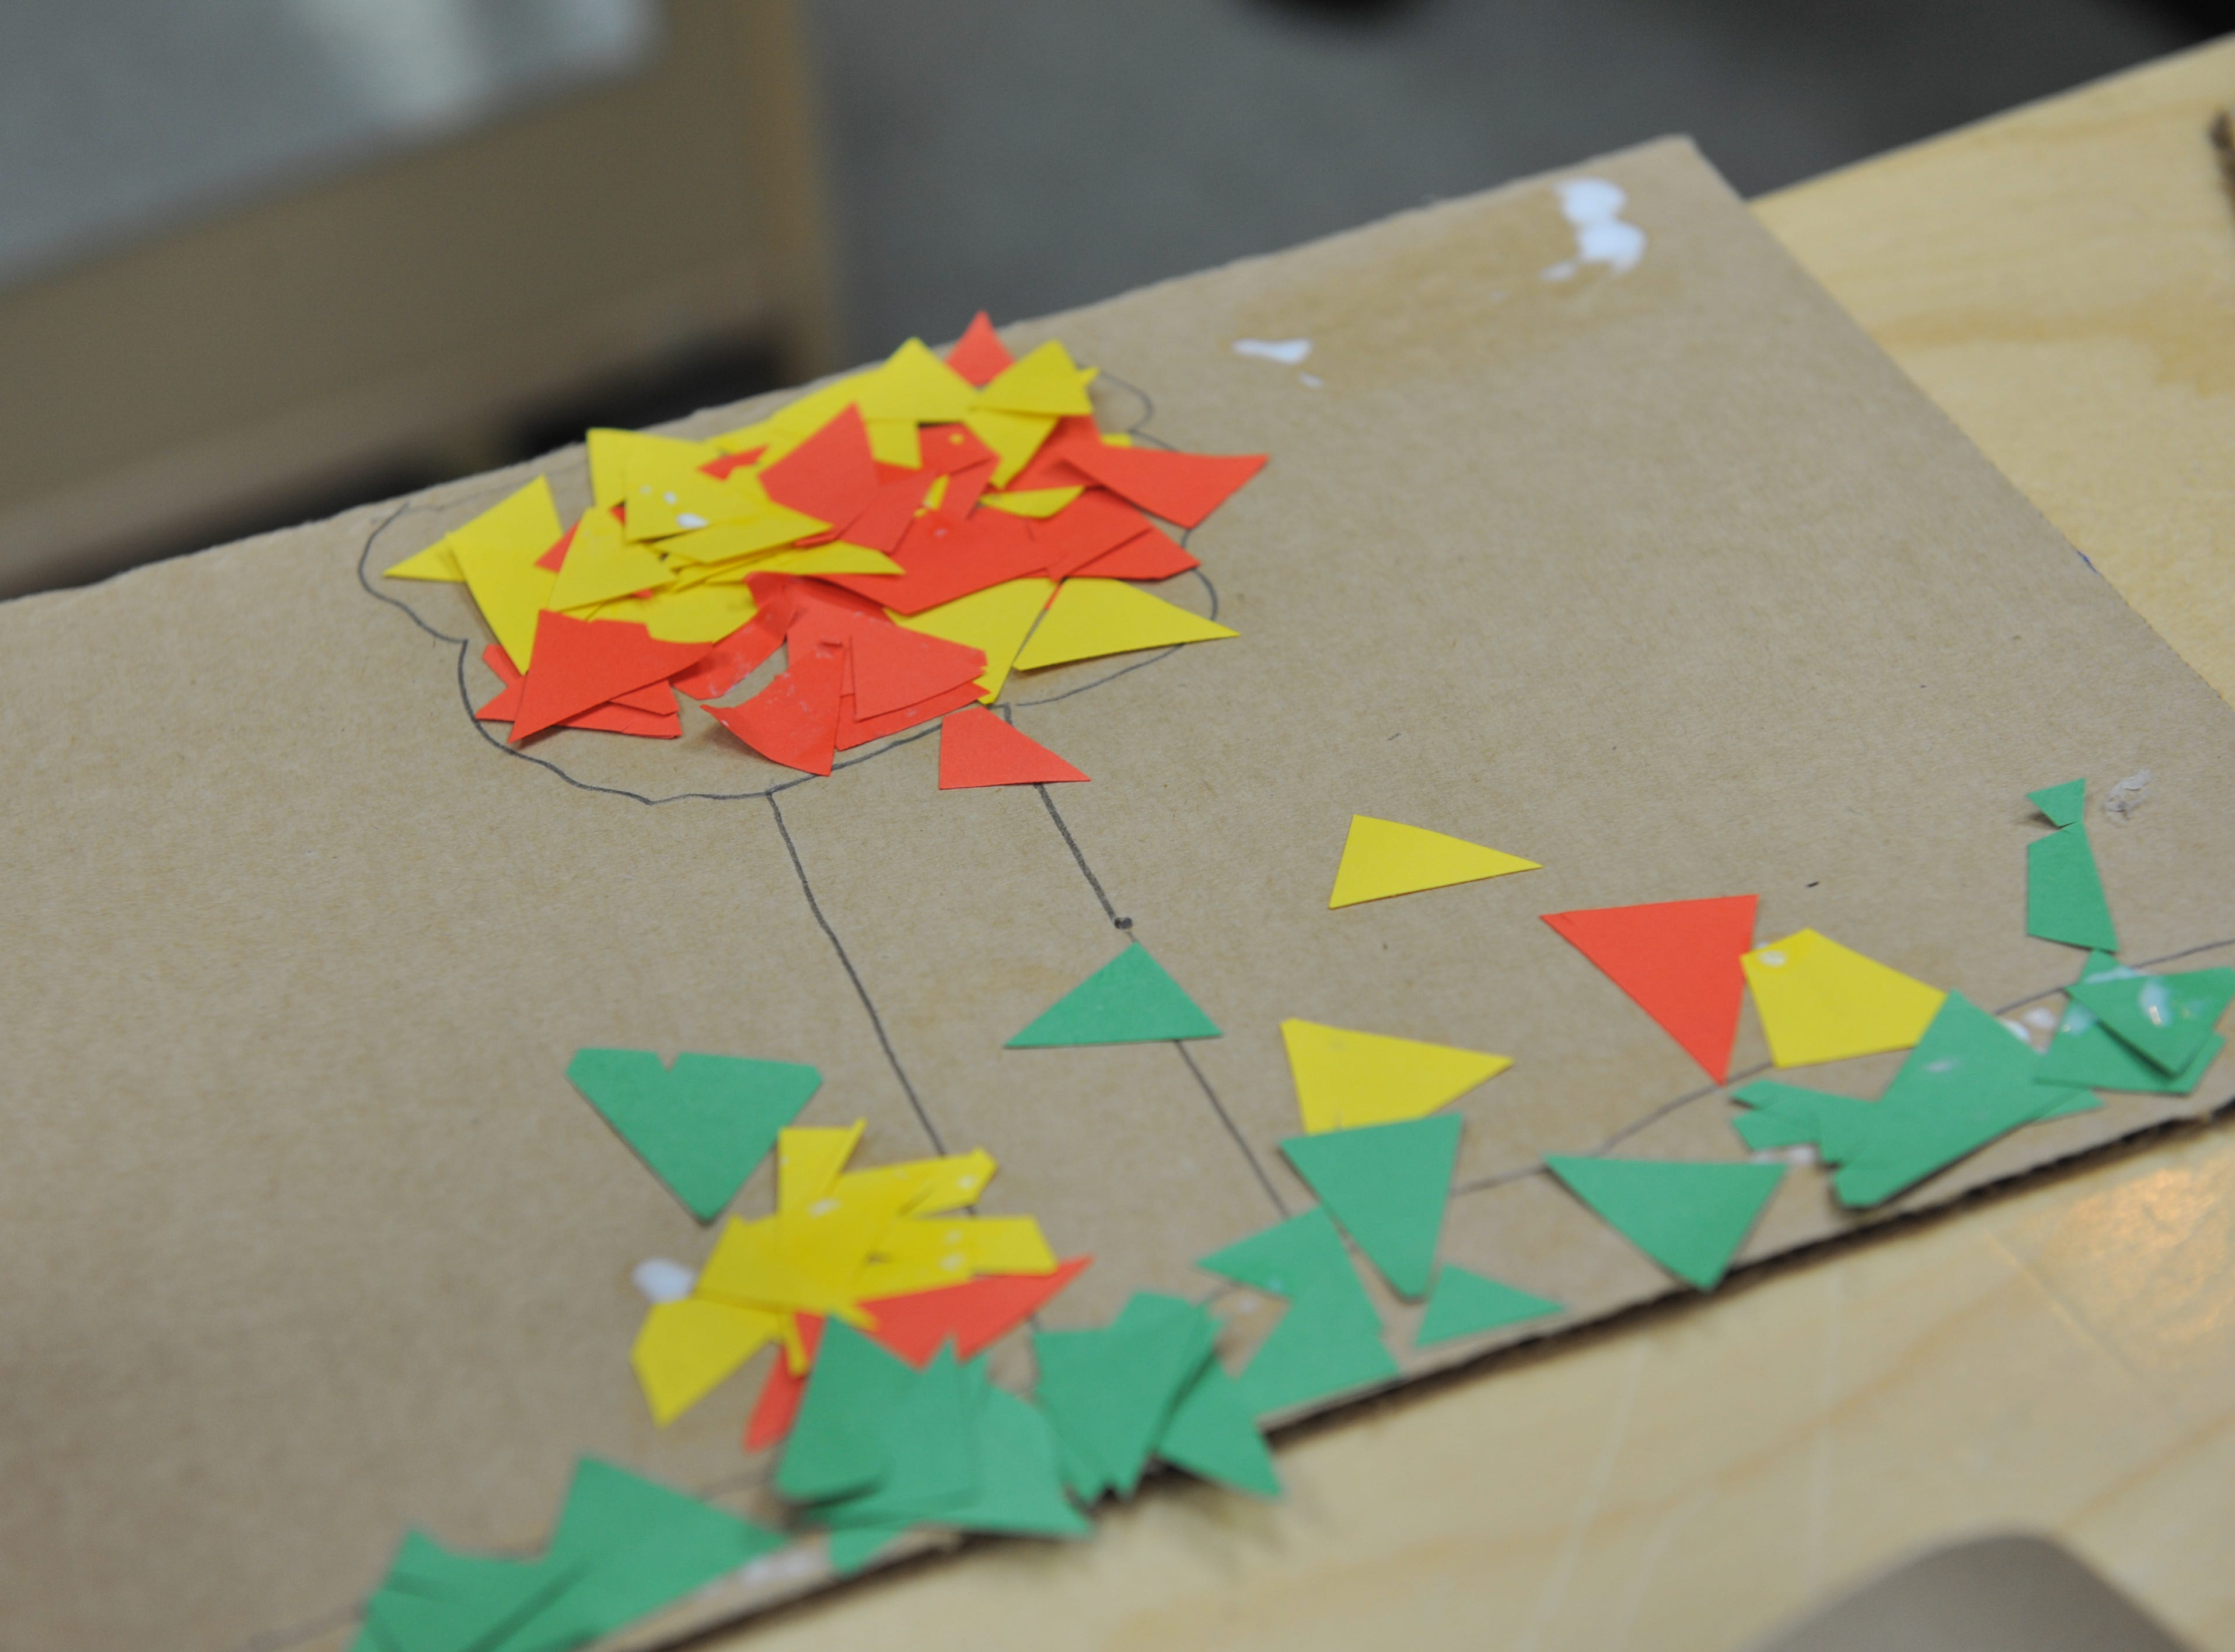 Andy Chan's mosaic, made of paper cutout triangles, depicts a tree in the fall.